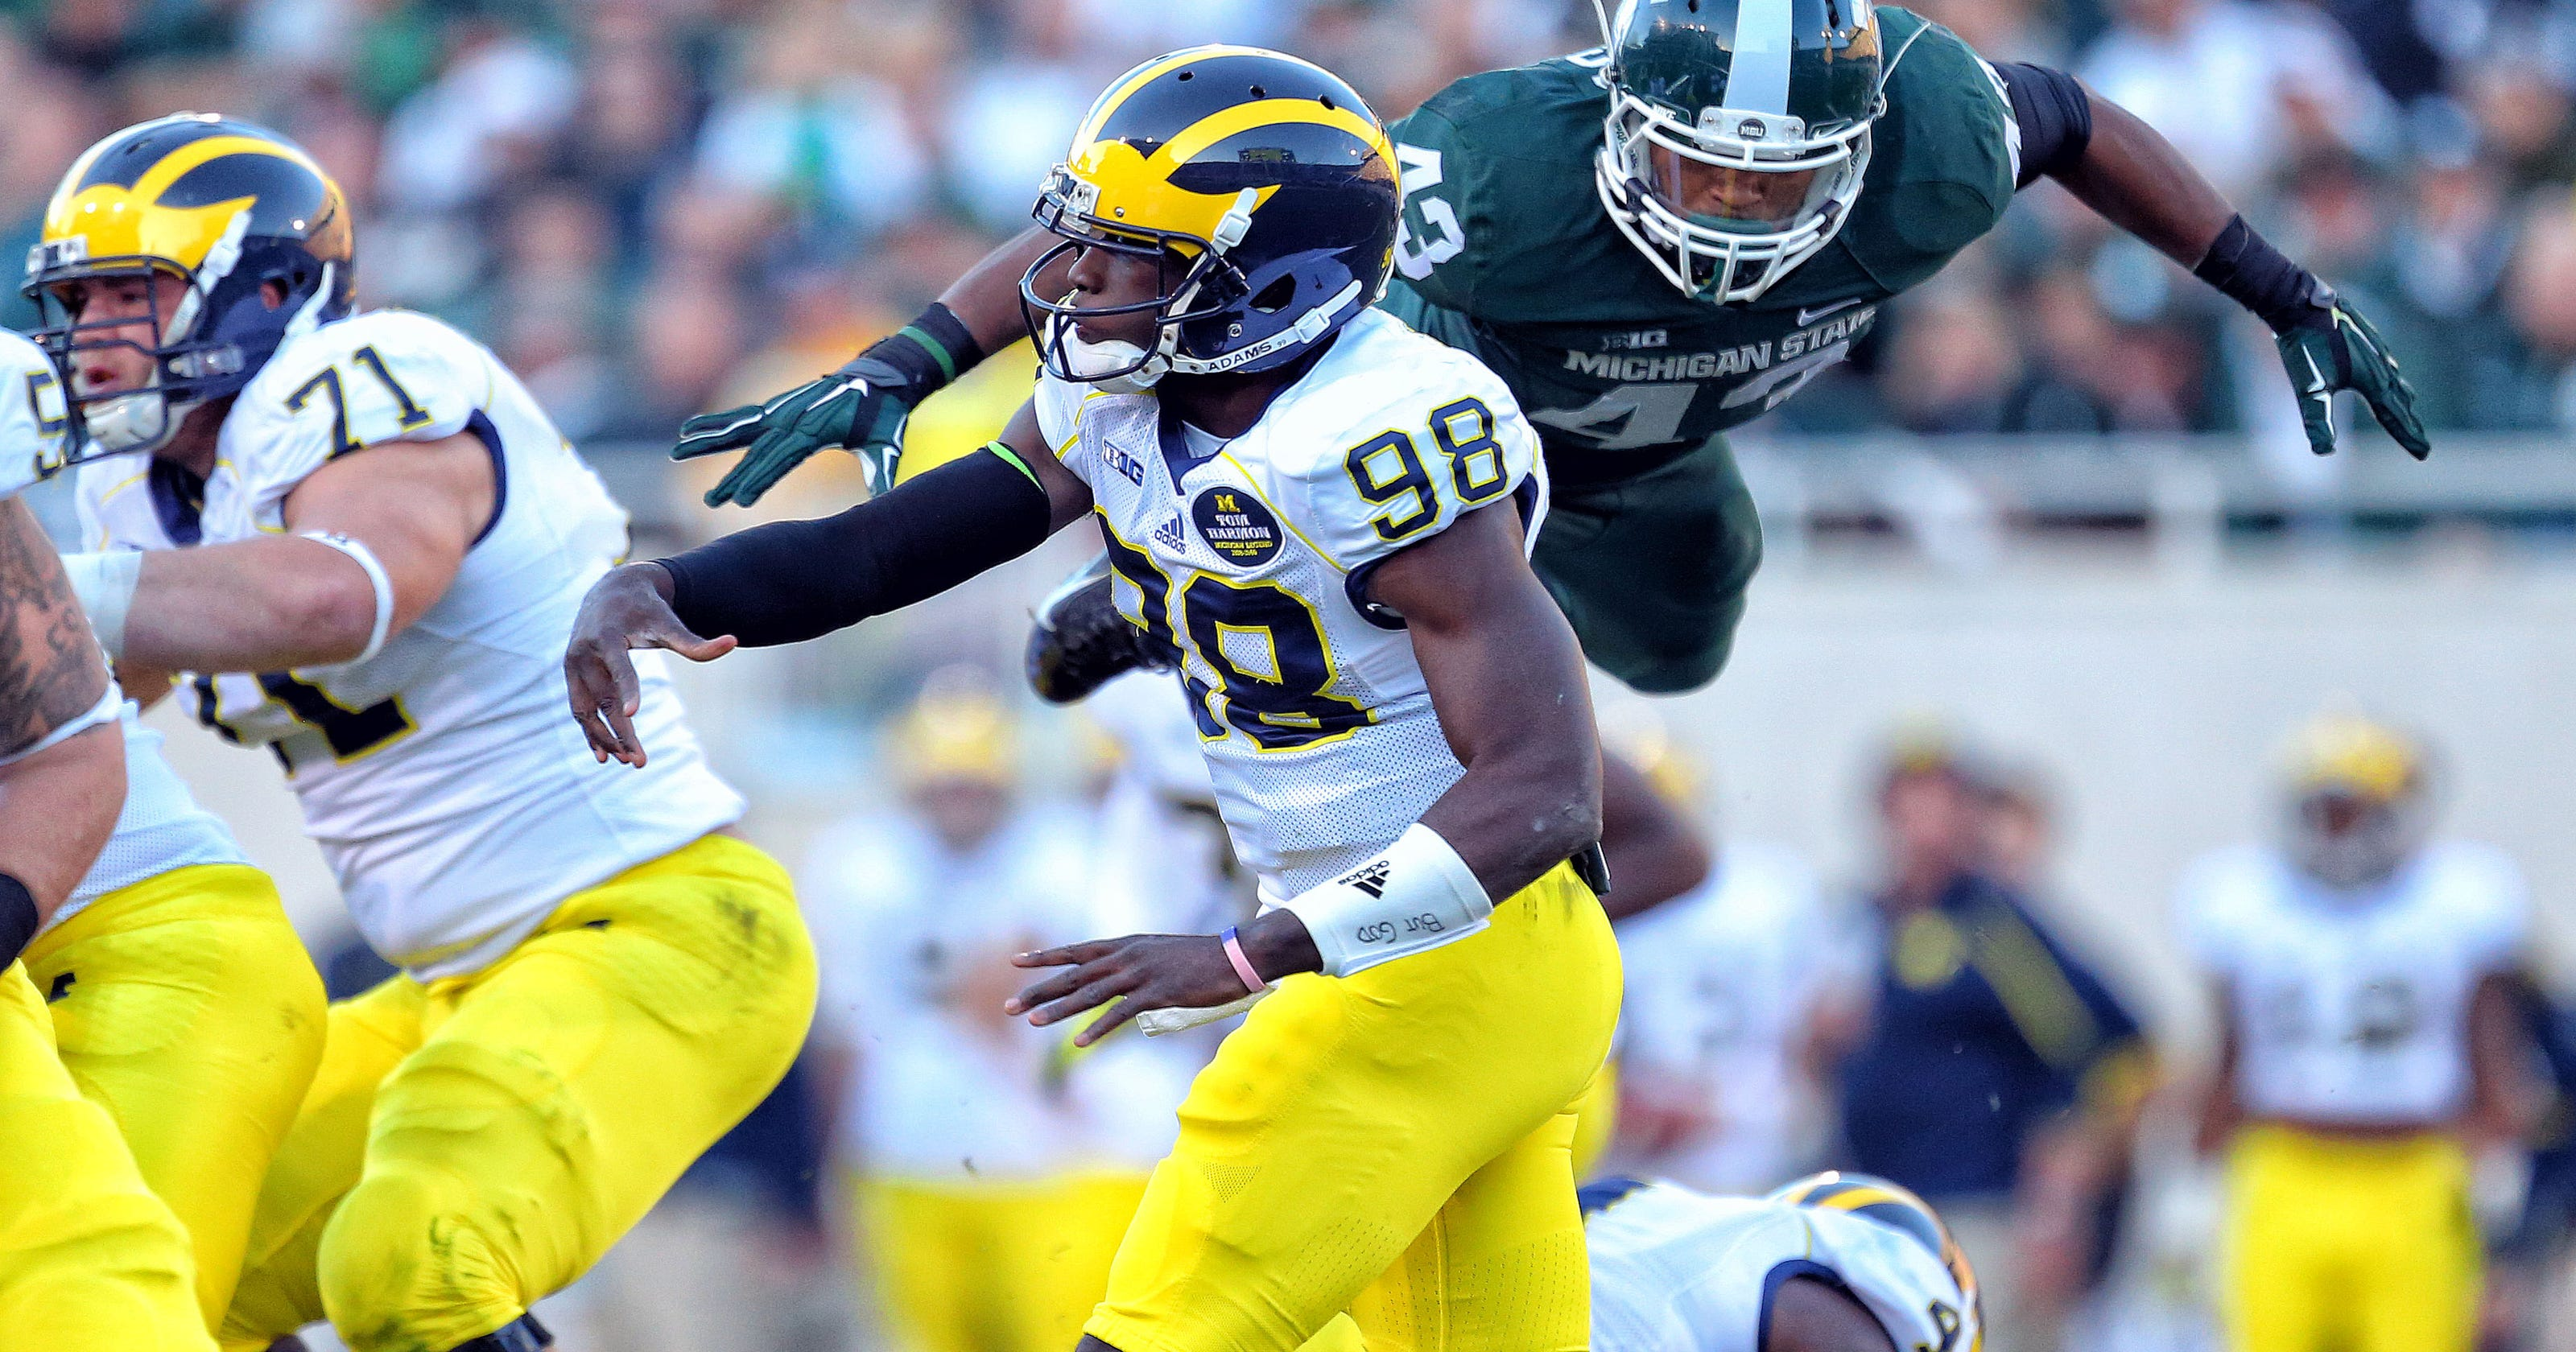 One-play return from injury has MSU linebacker Ed Davis ready for more